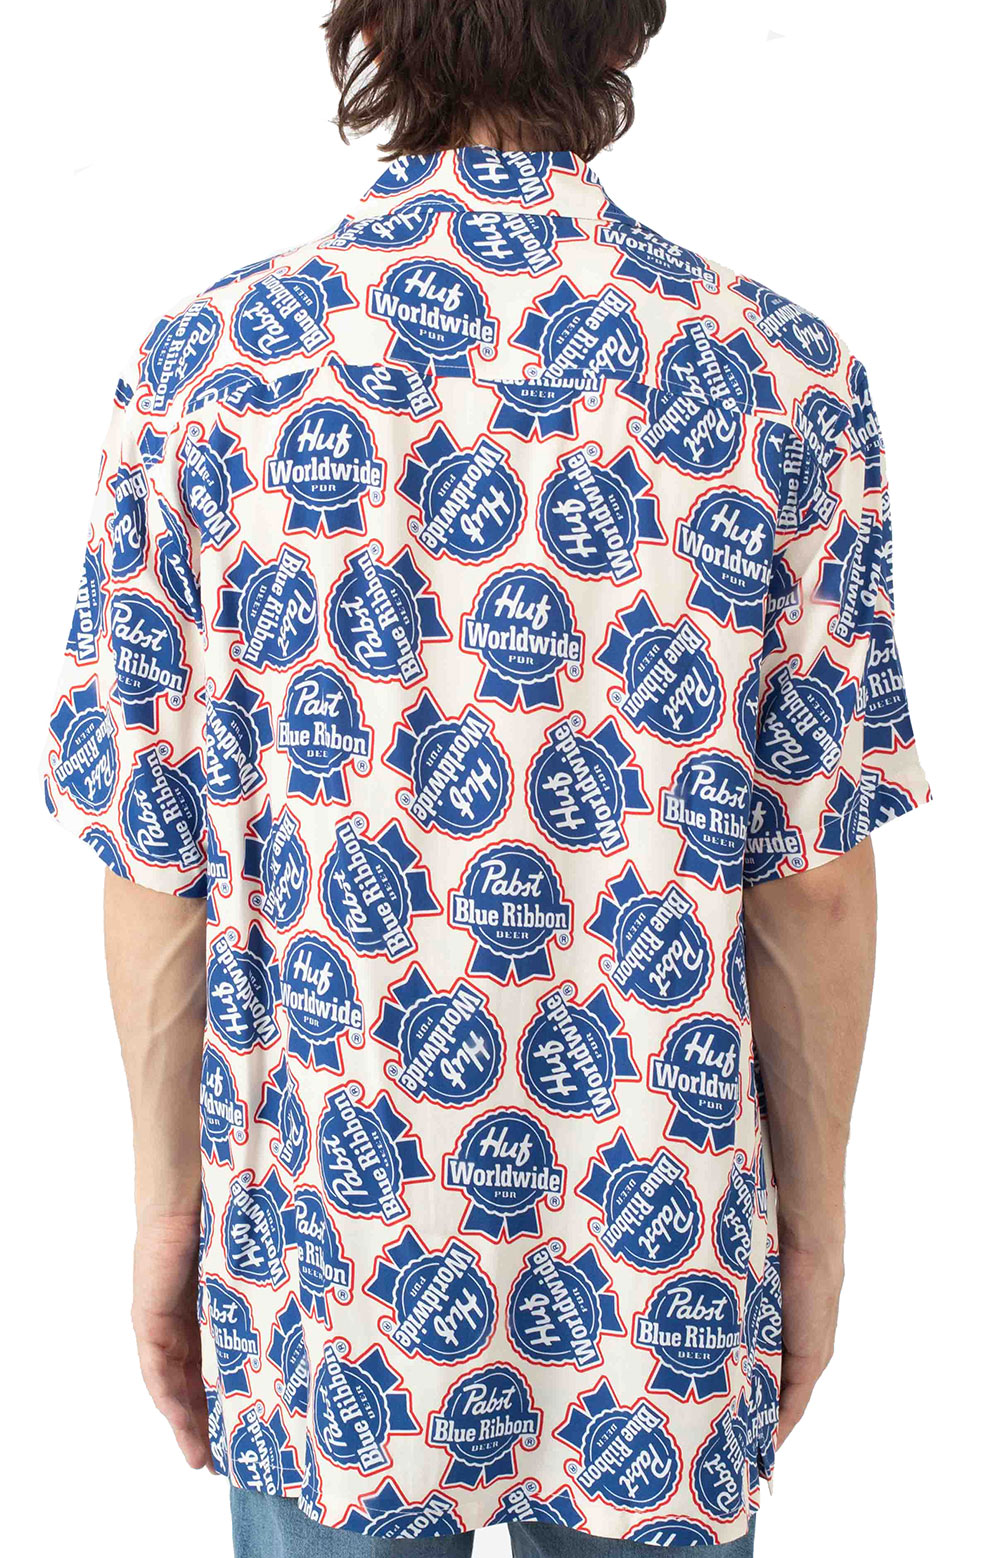 Rayon S/S Woven Button-Up Shirt - Natural  3